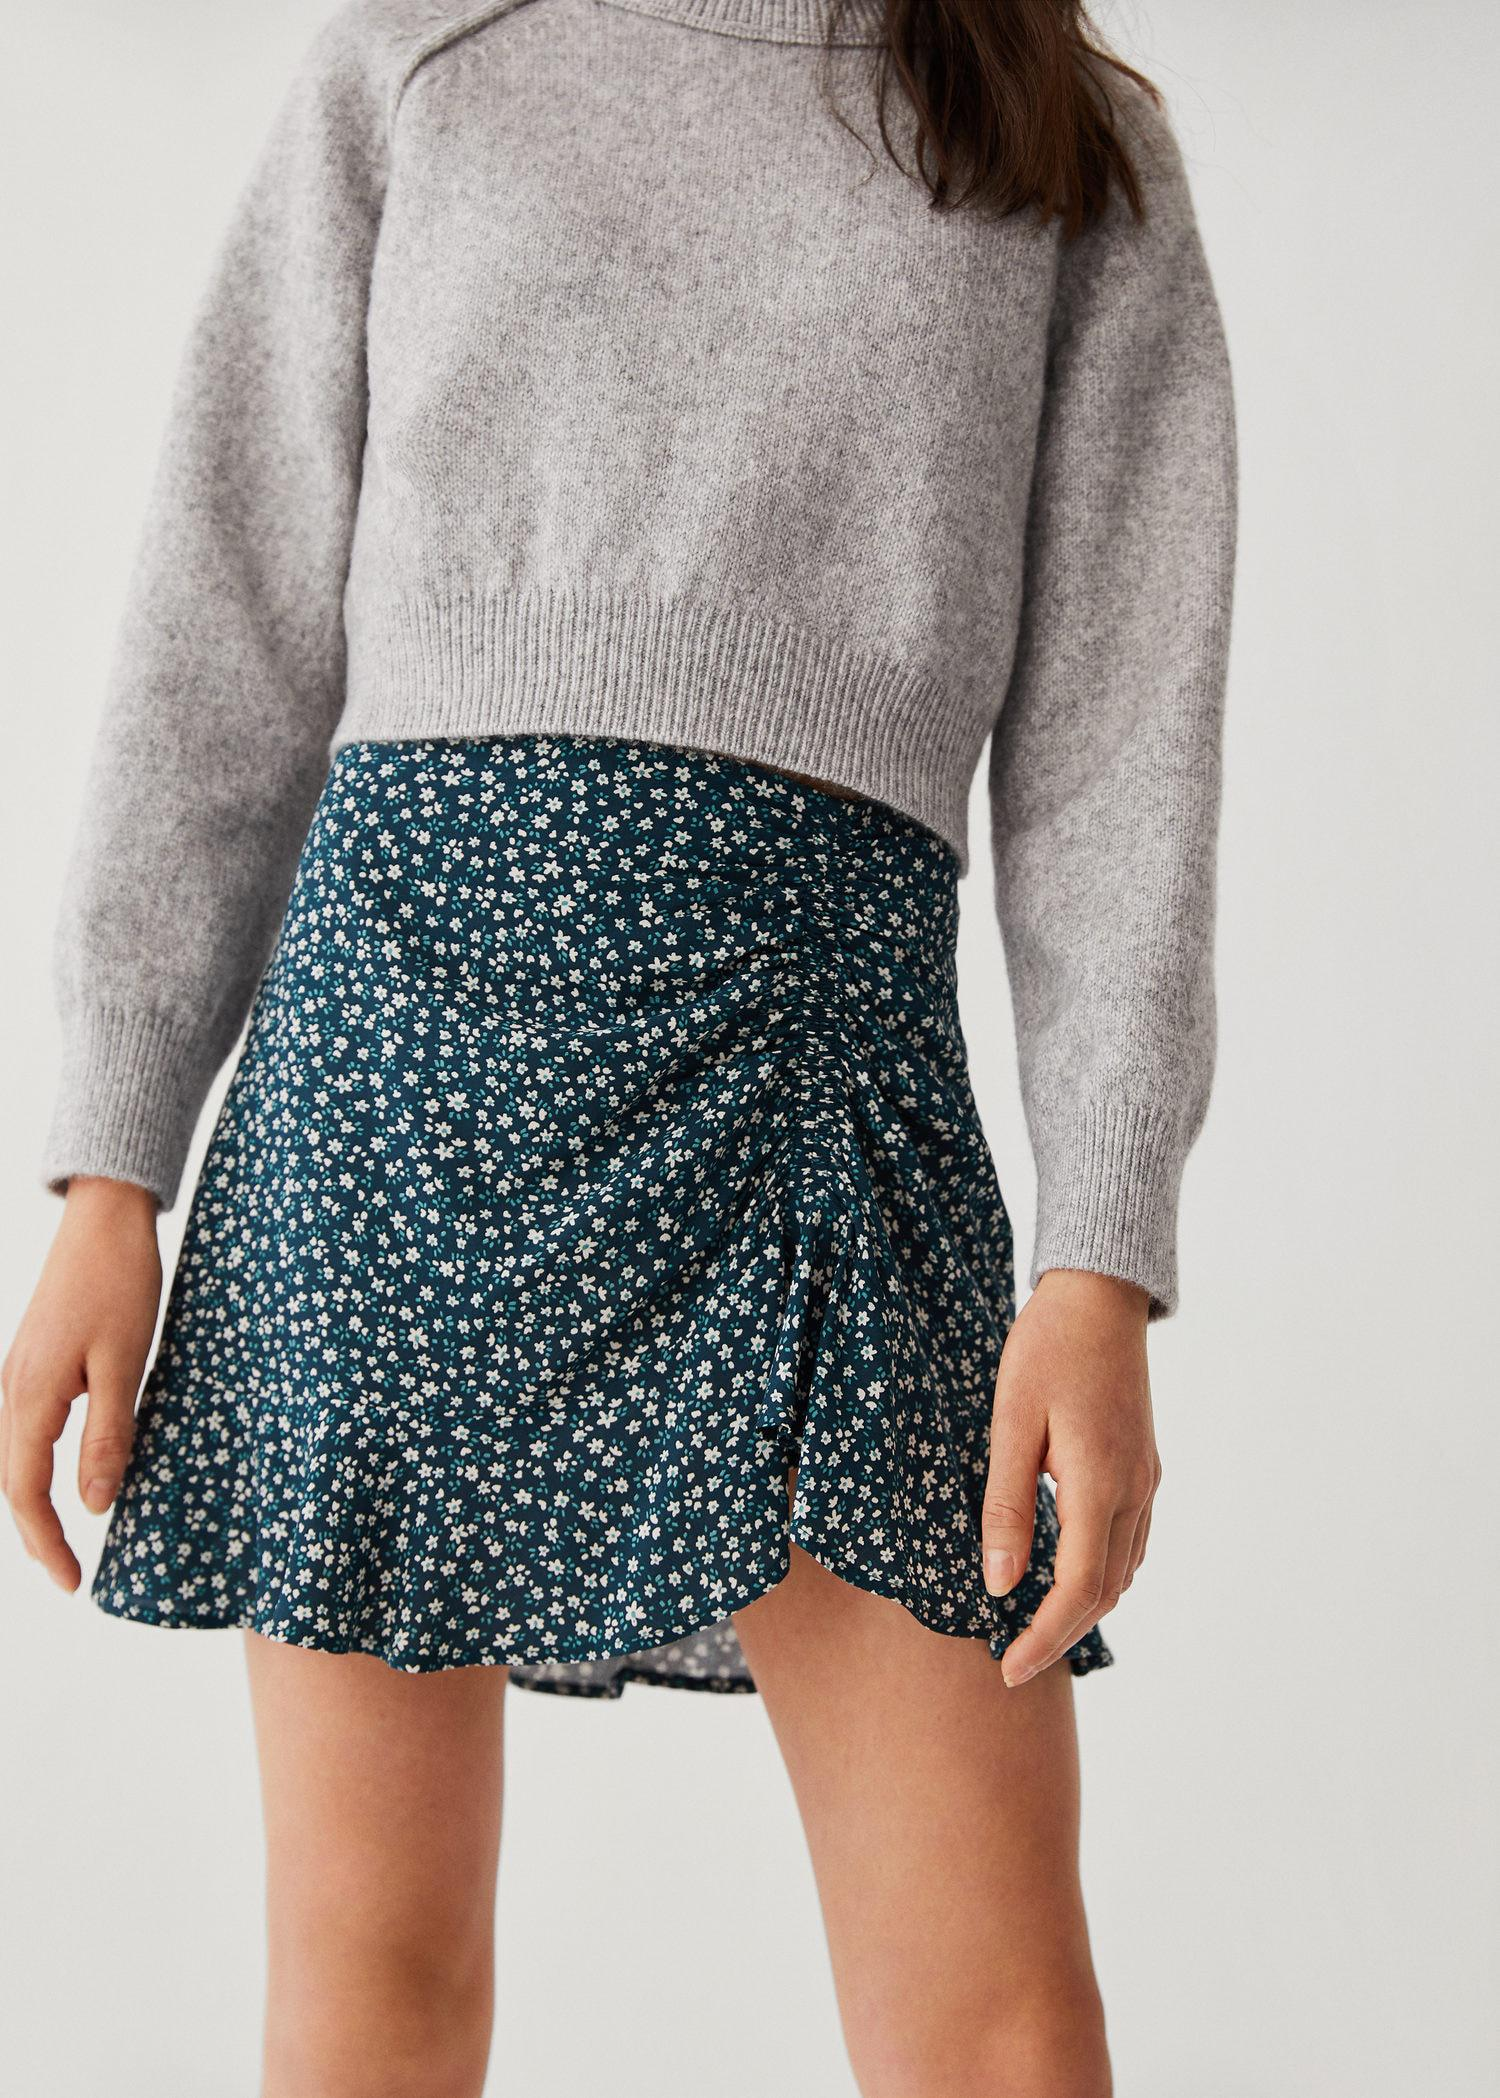 Printed skirt with bow